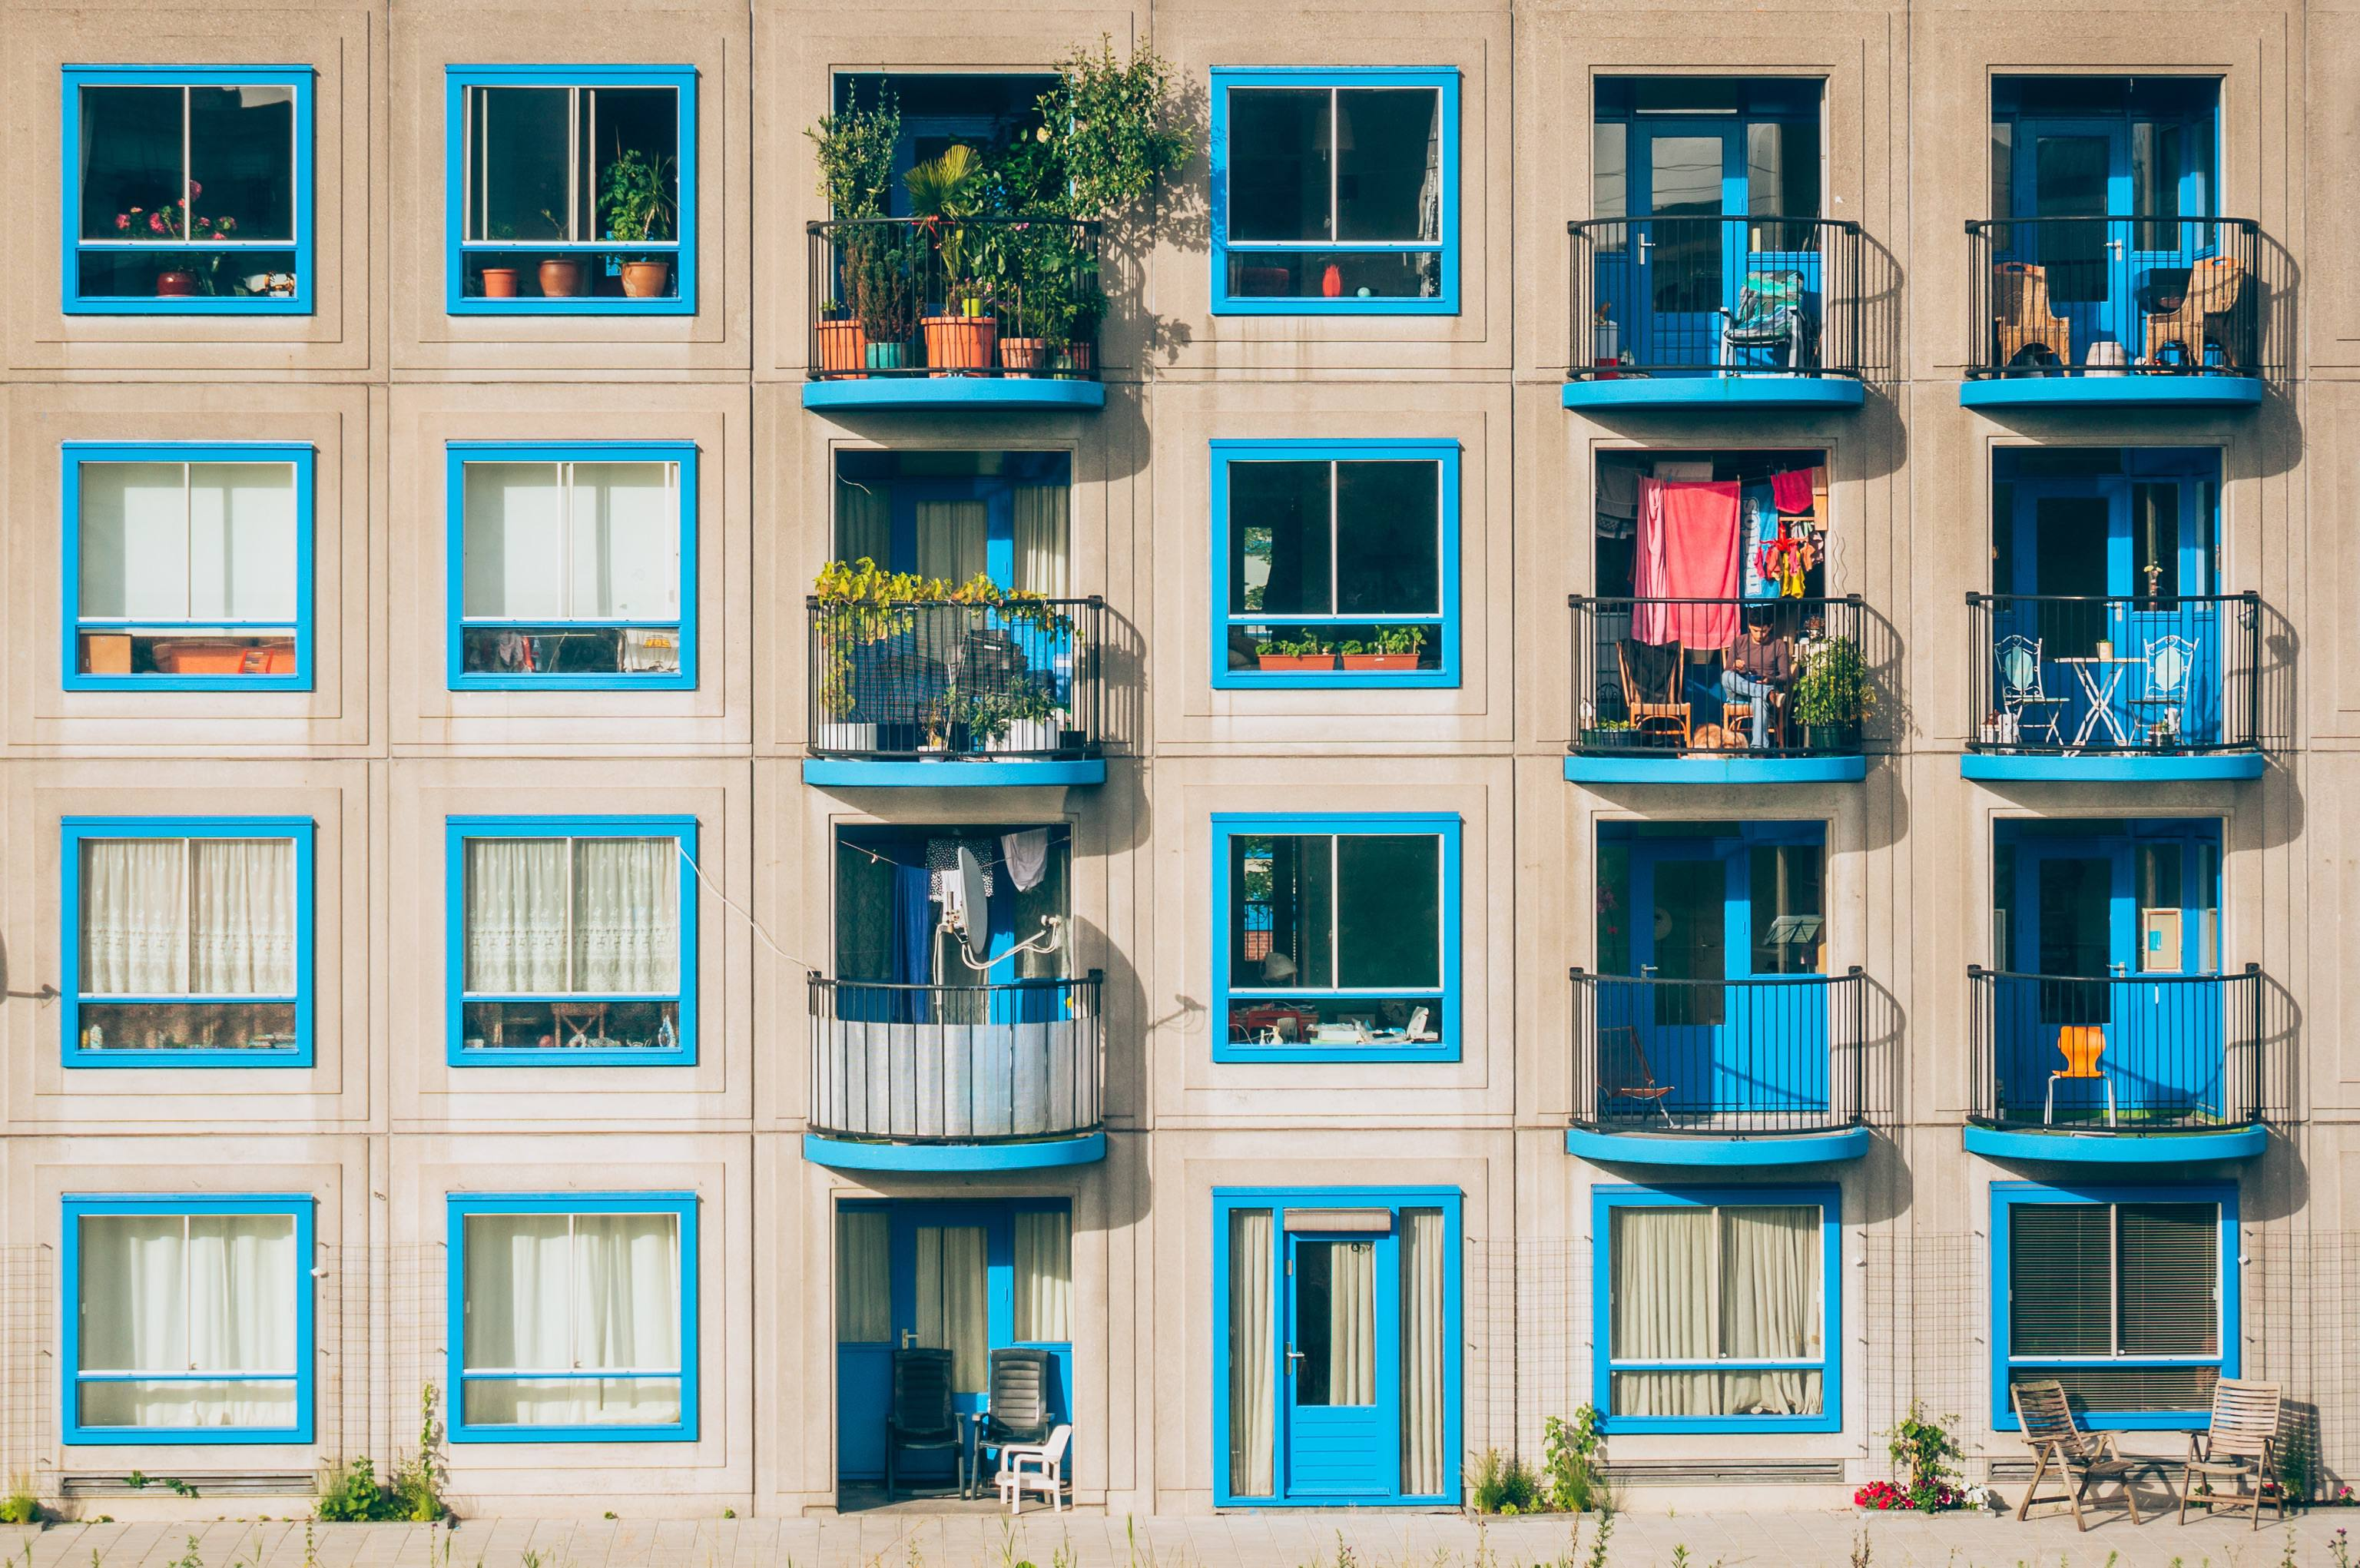 The advantages of buying, selling, renting an apartment through an agency